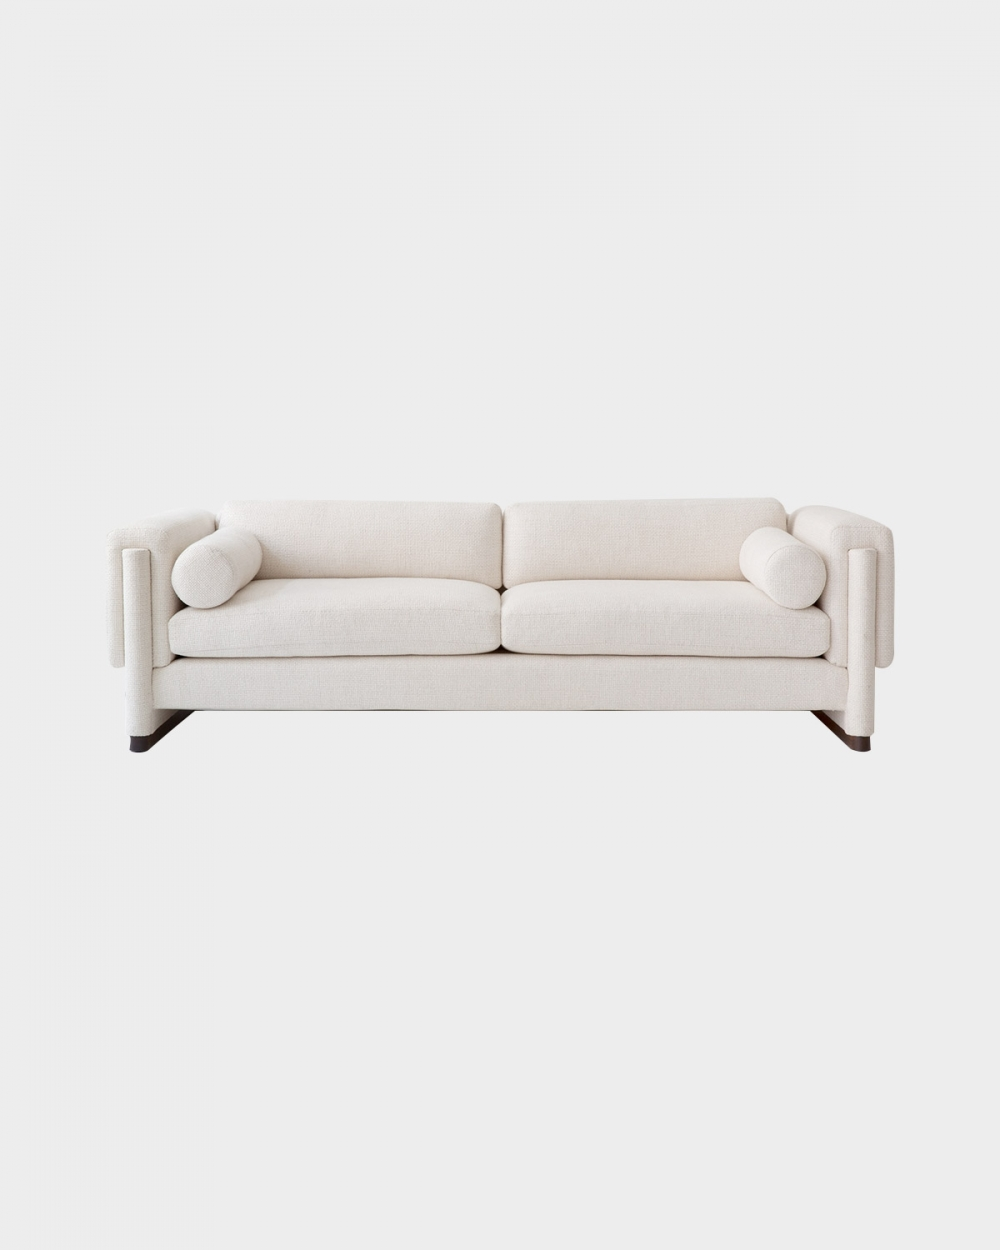 The Howard Sofa By Egg Collective